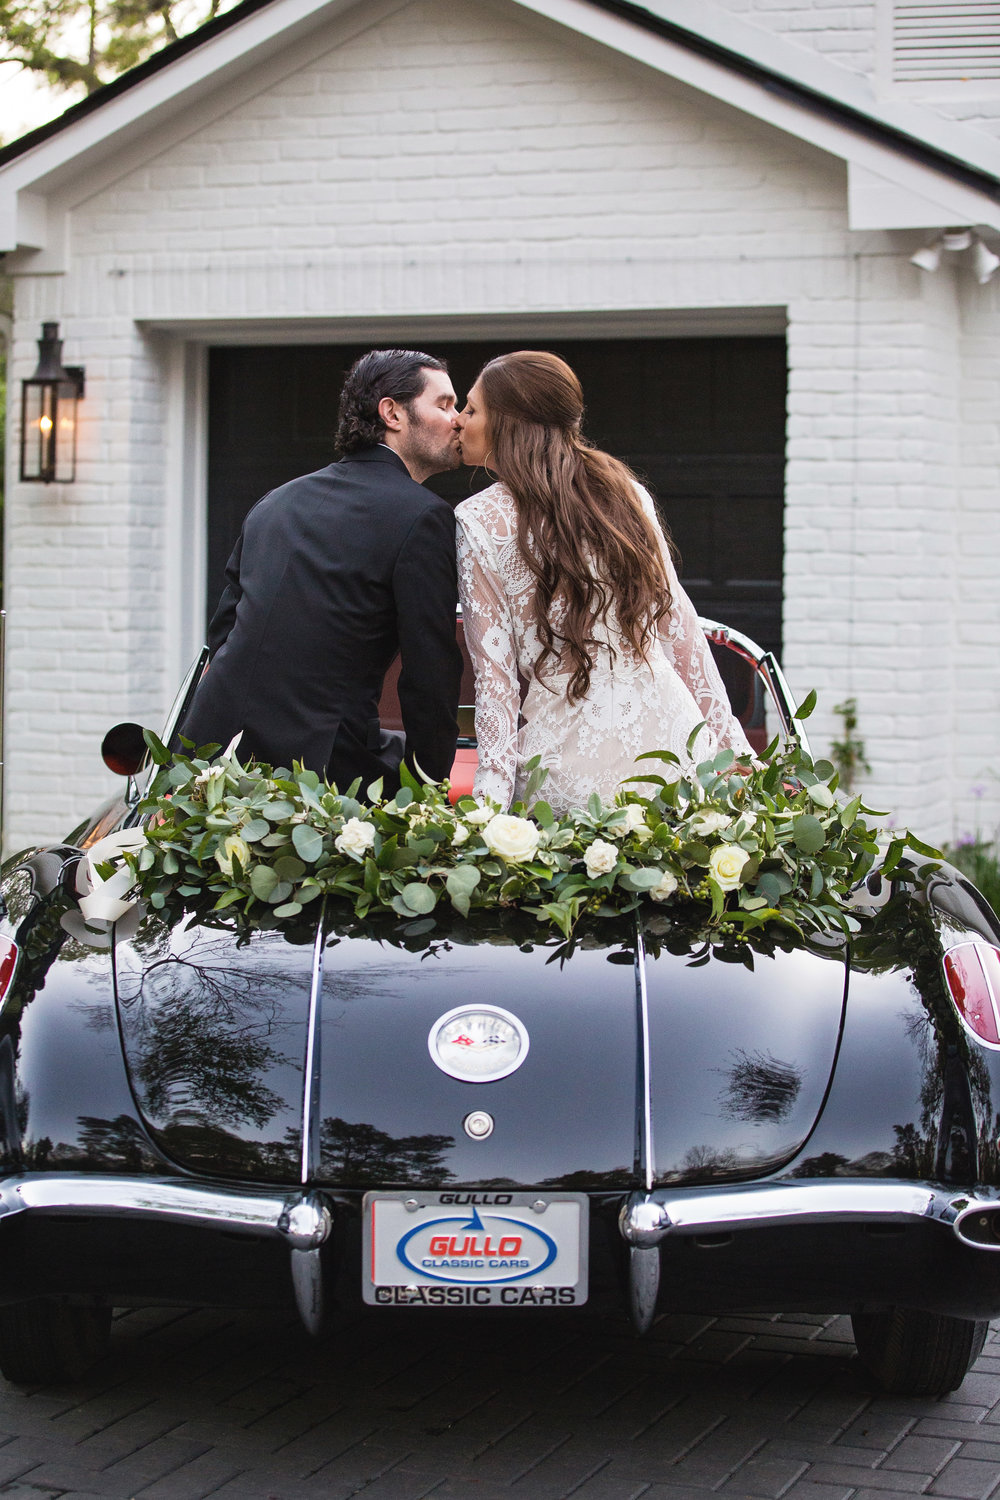 Kissing-Car-Wedding-Garland.jpg